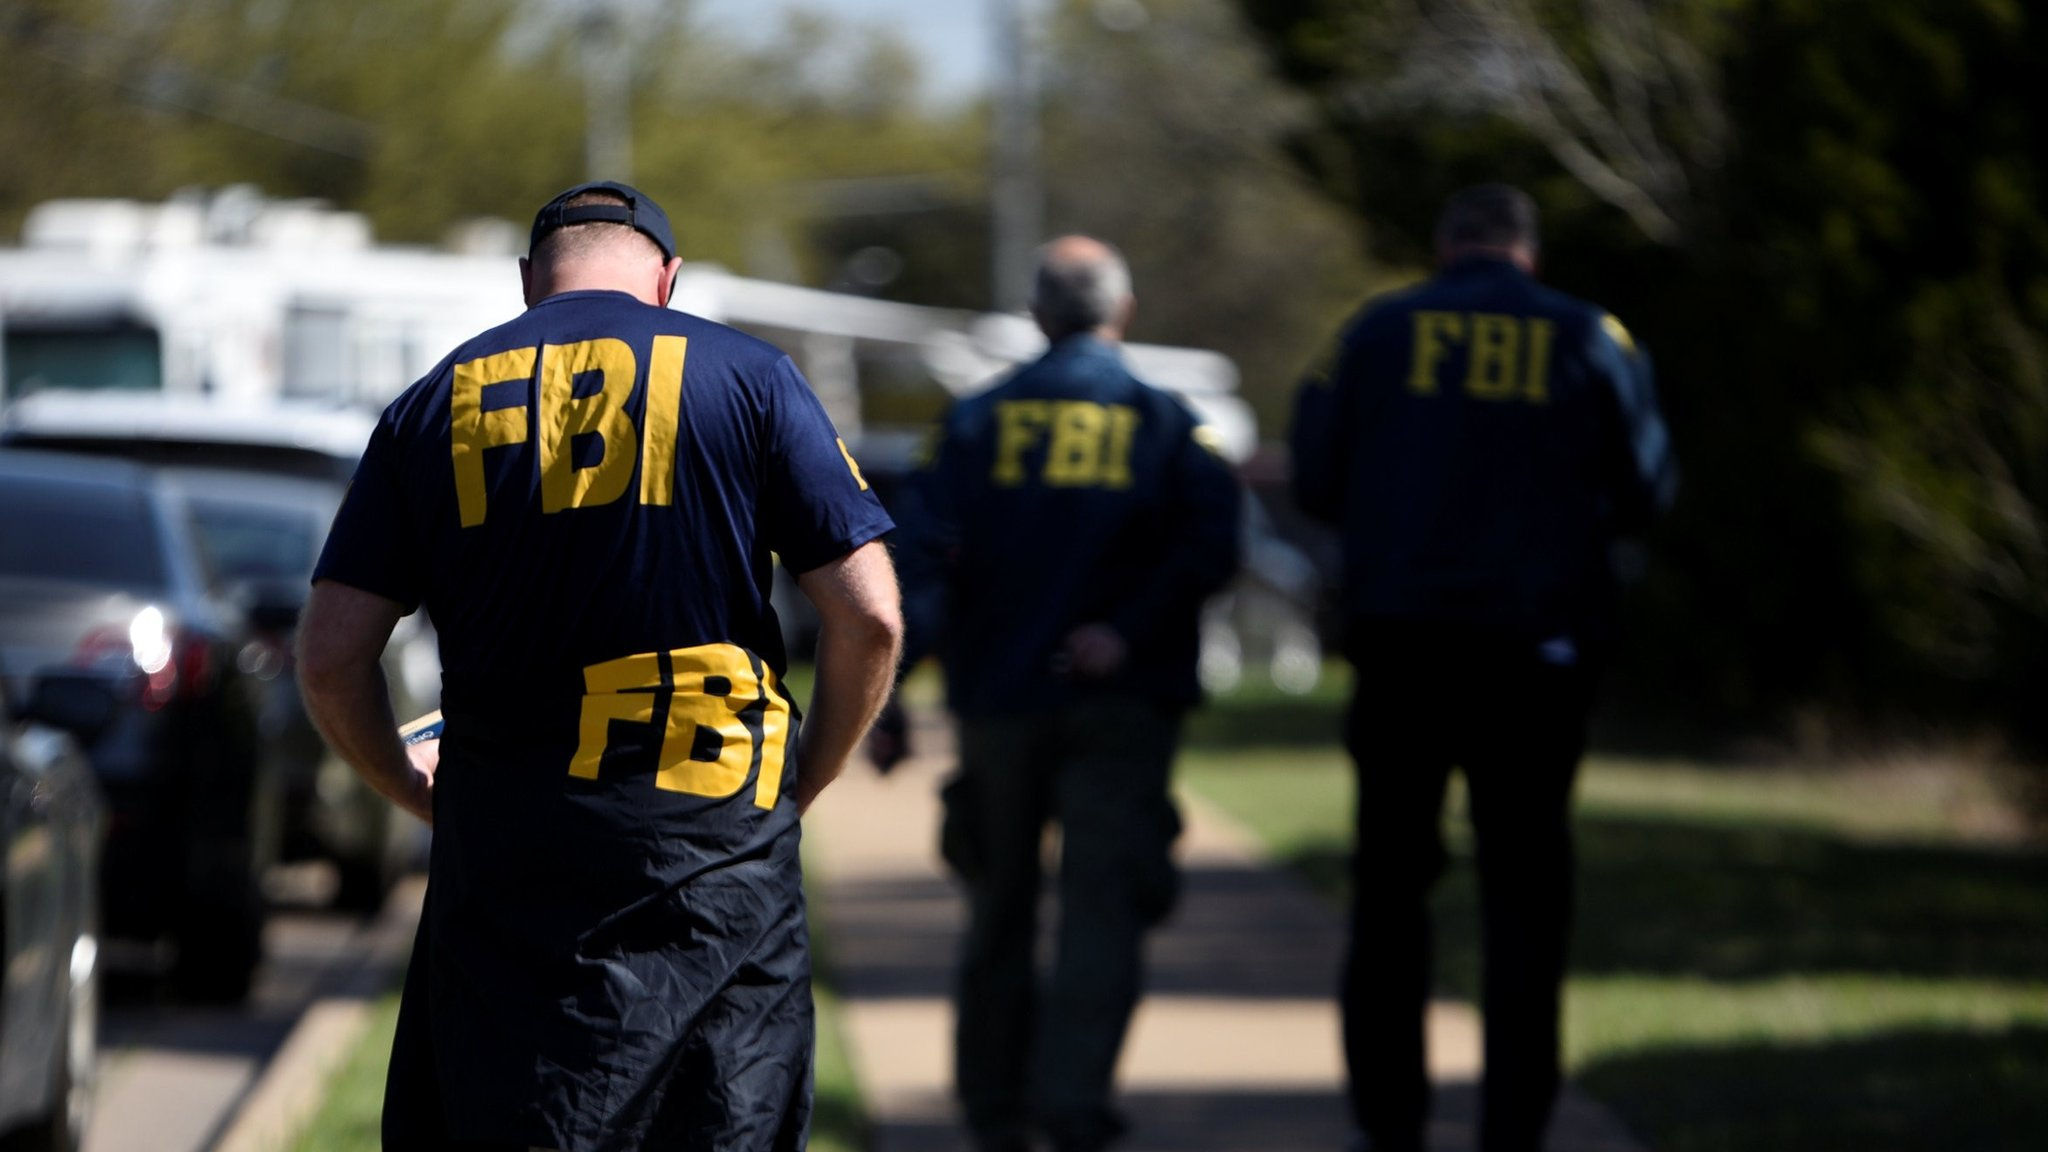 Texas explosions: FBI investigating new blast at FedEx plant